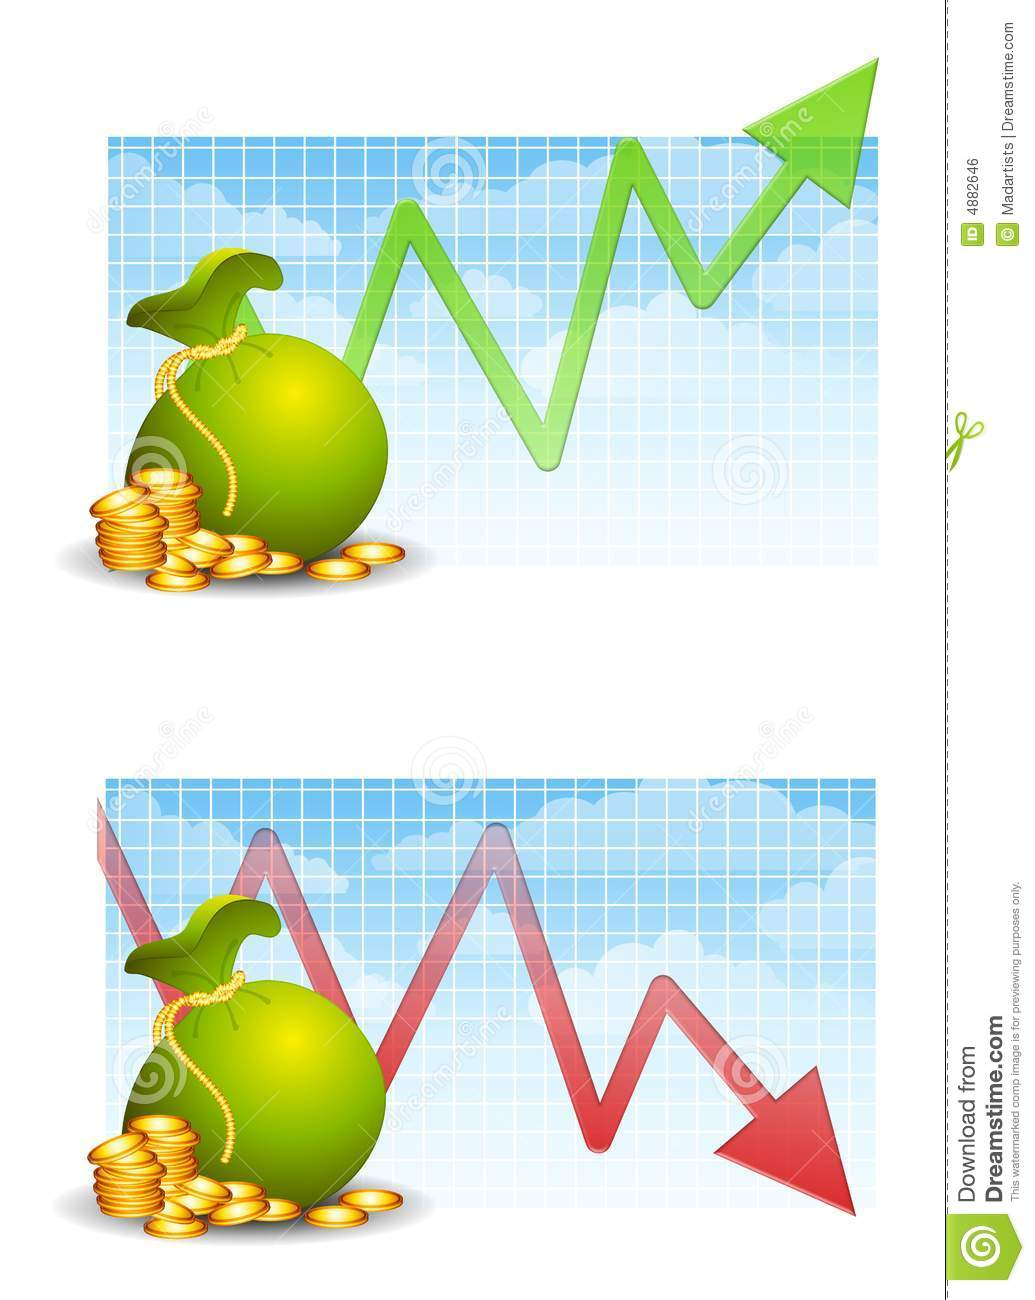 Making And Losing Money Royalty Free Stock Image - Image: 4882646